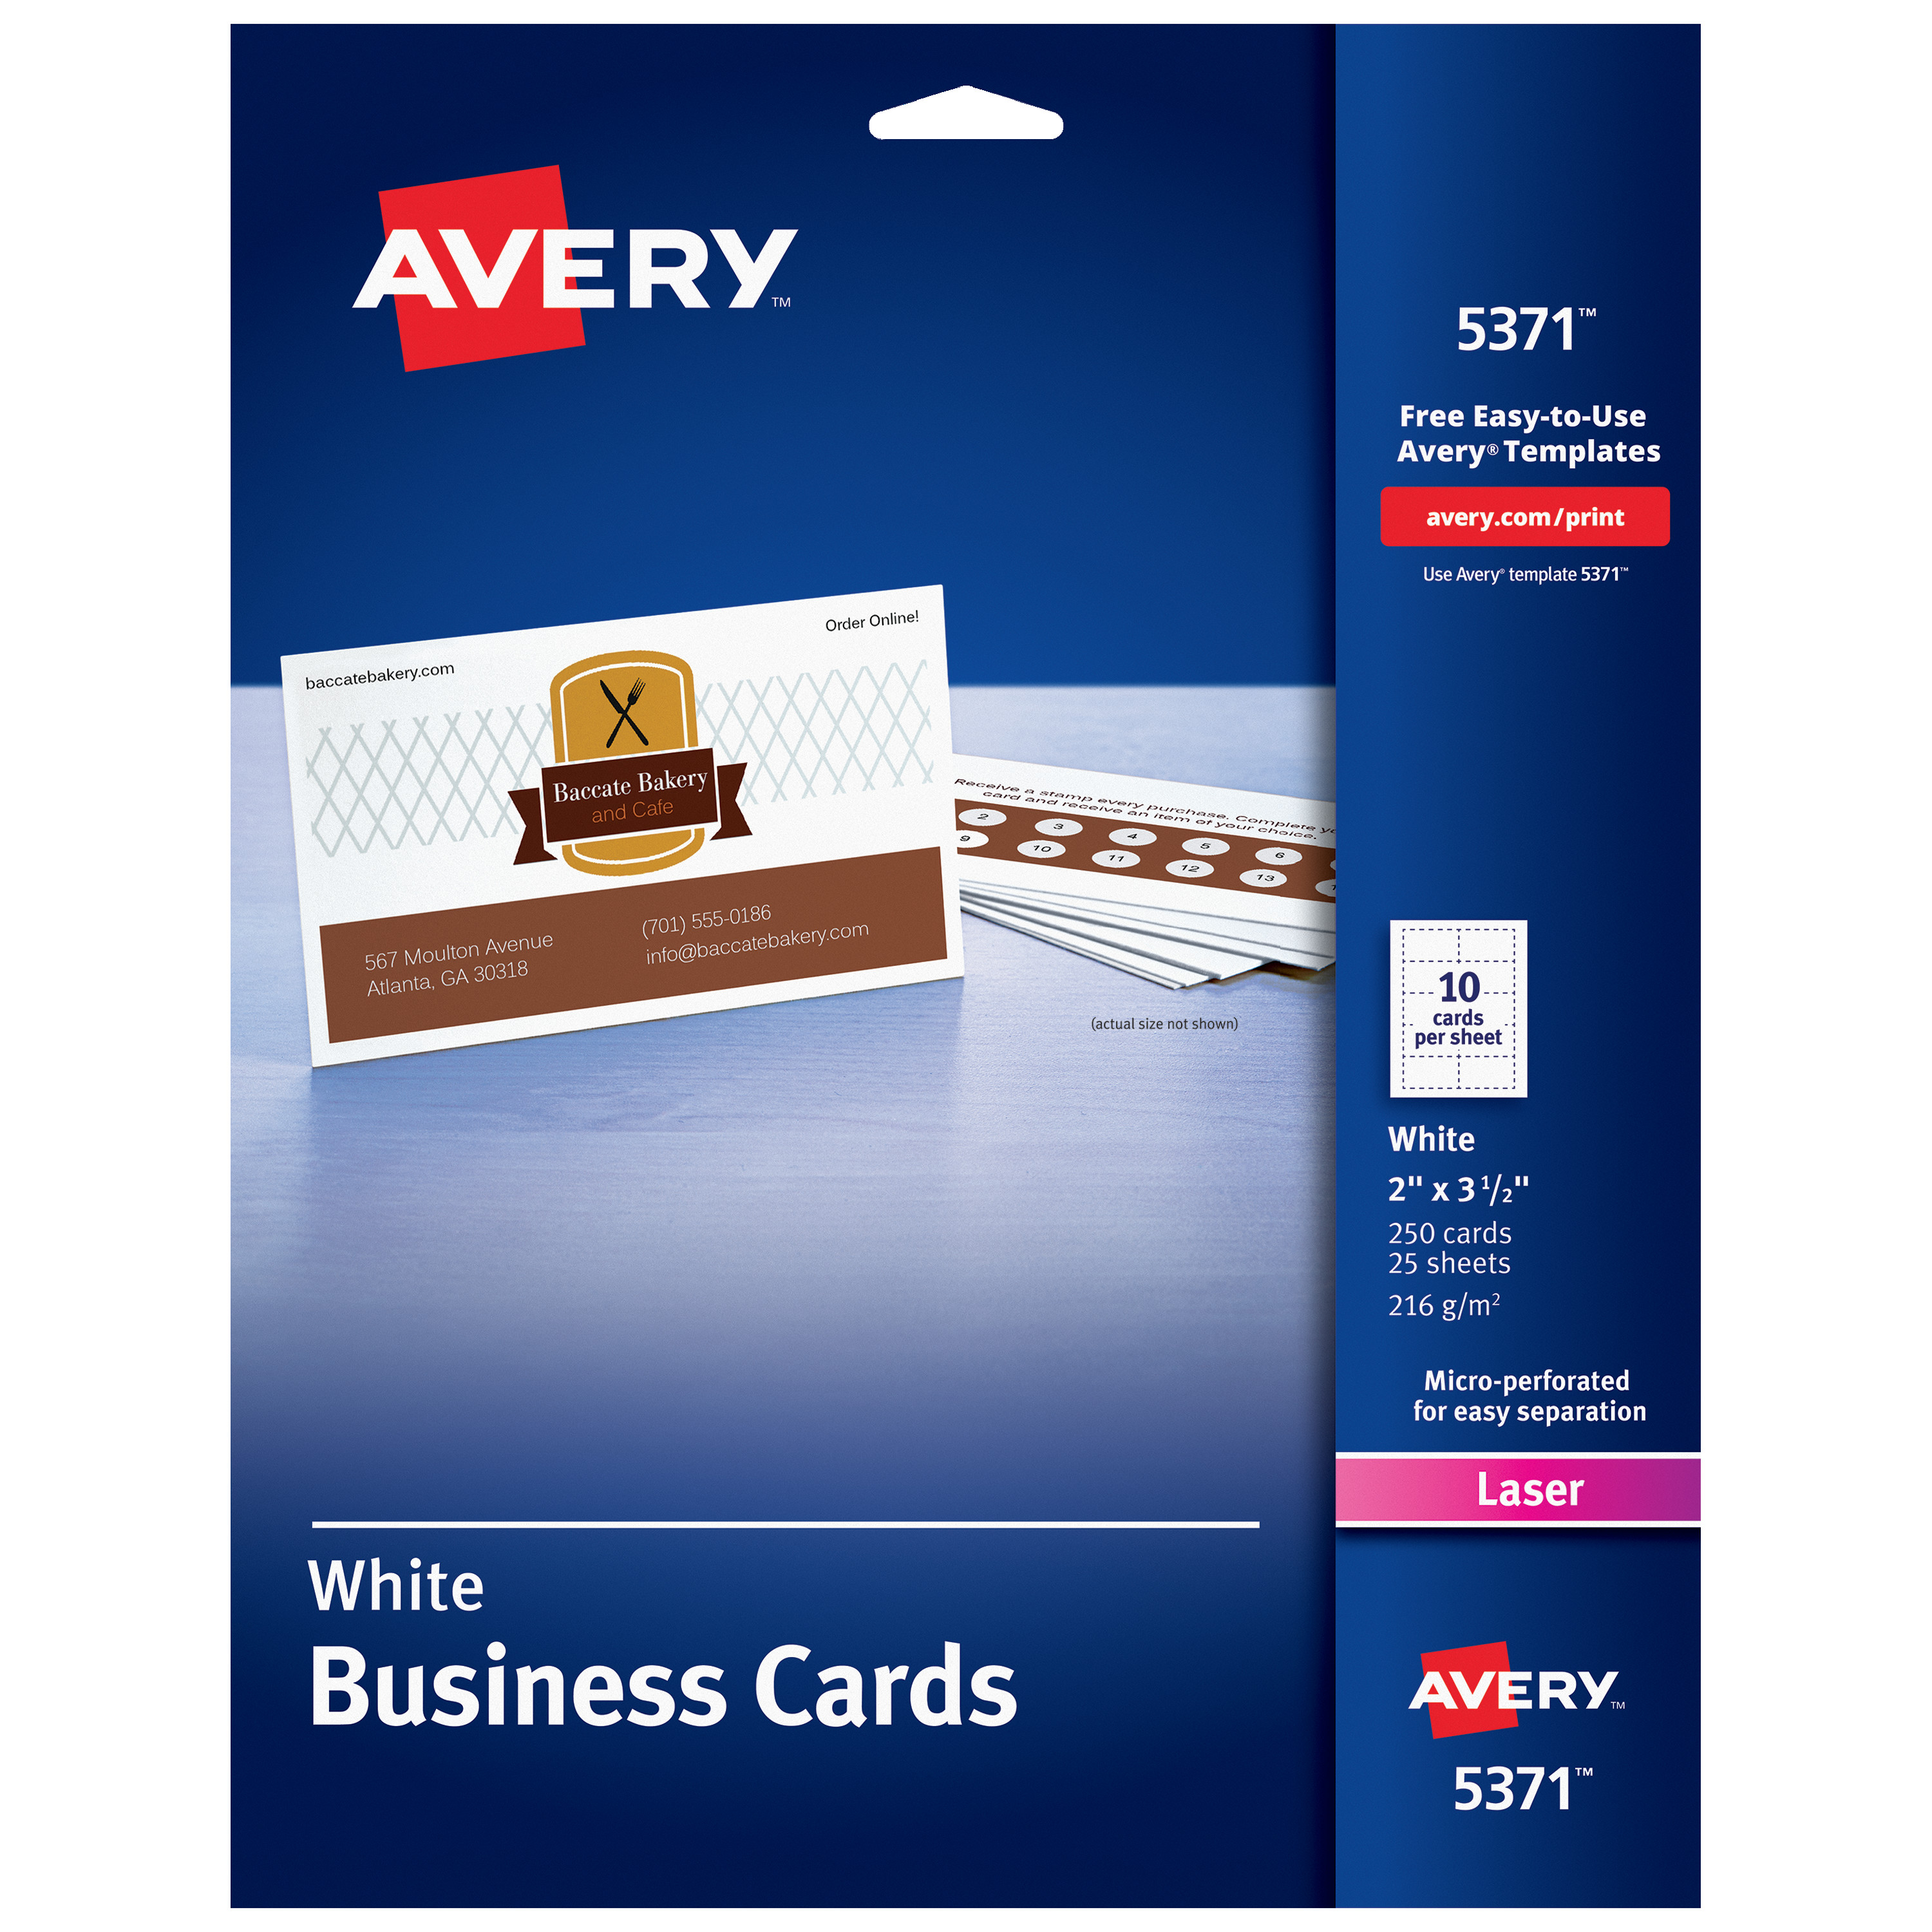 Avery 5371 Word Template from i5.walmartimages.com